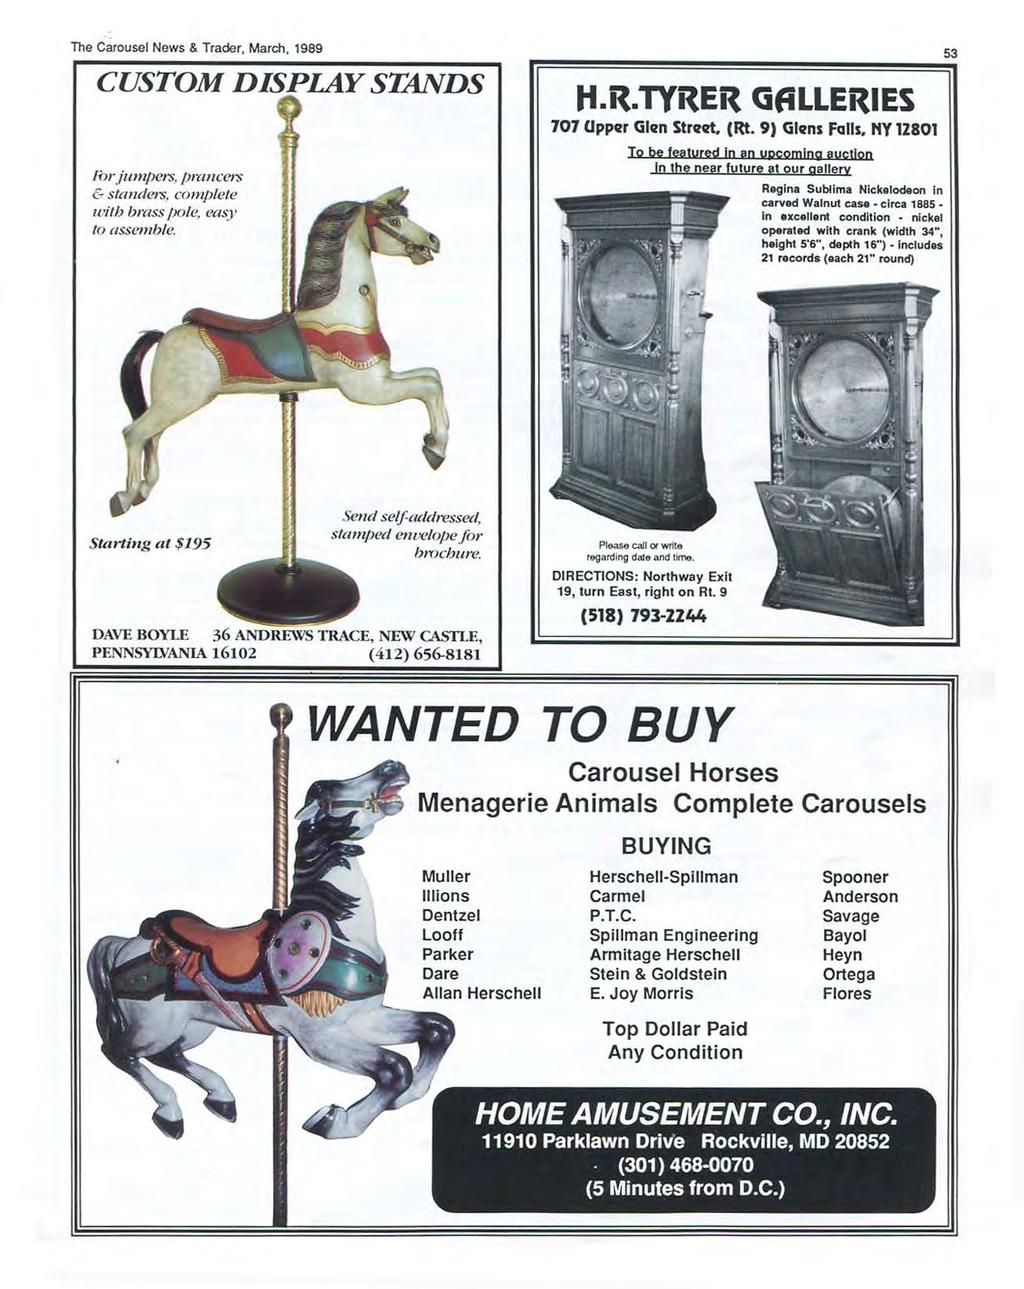 The Carousel News & Trader, March, 1989 CUSTOM DISPLAY STANDS Forjumpers, prancers & standers. complete witb brass pole, easy to assemble. H.~.TY~Eit GALLERIES 707 Oppvr Glvn Strut. (Rt.